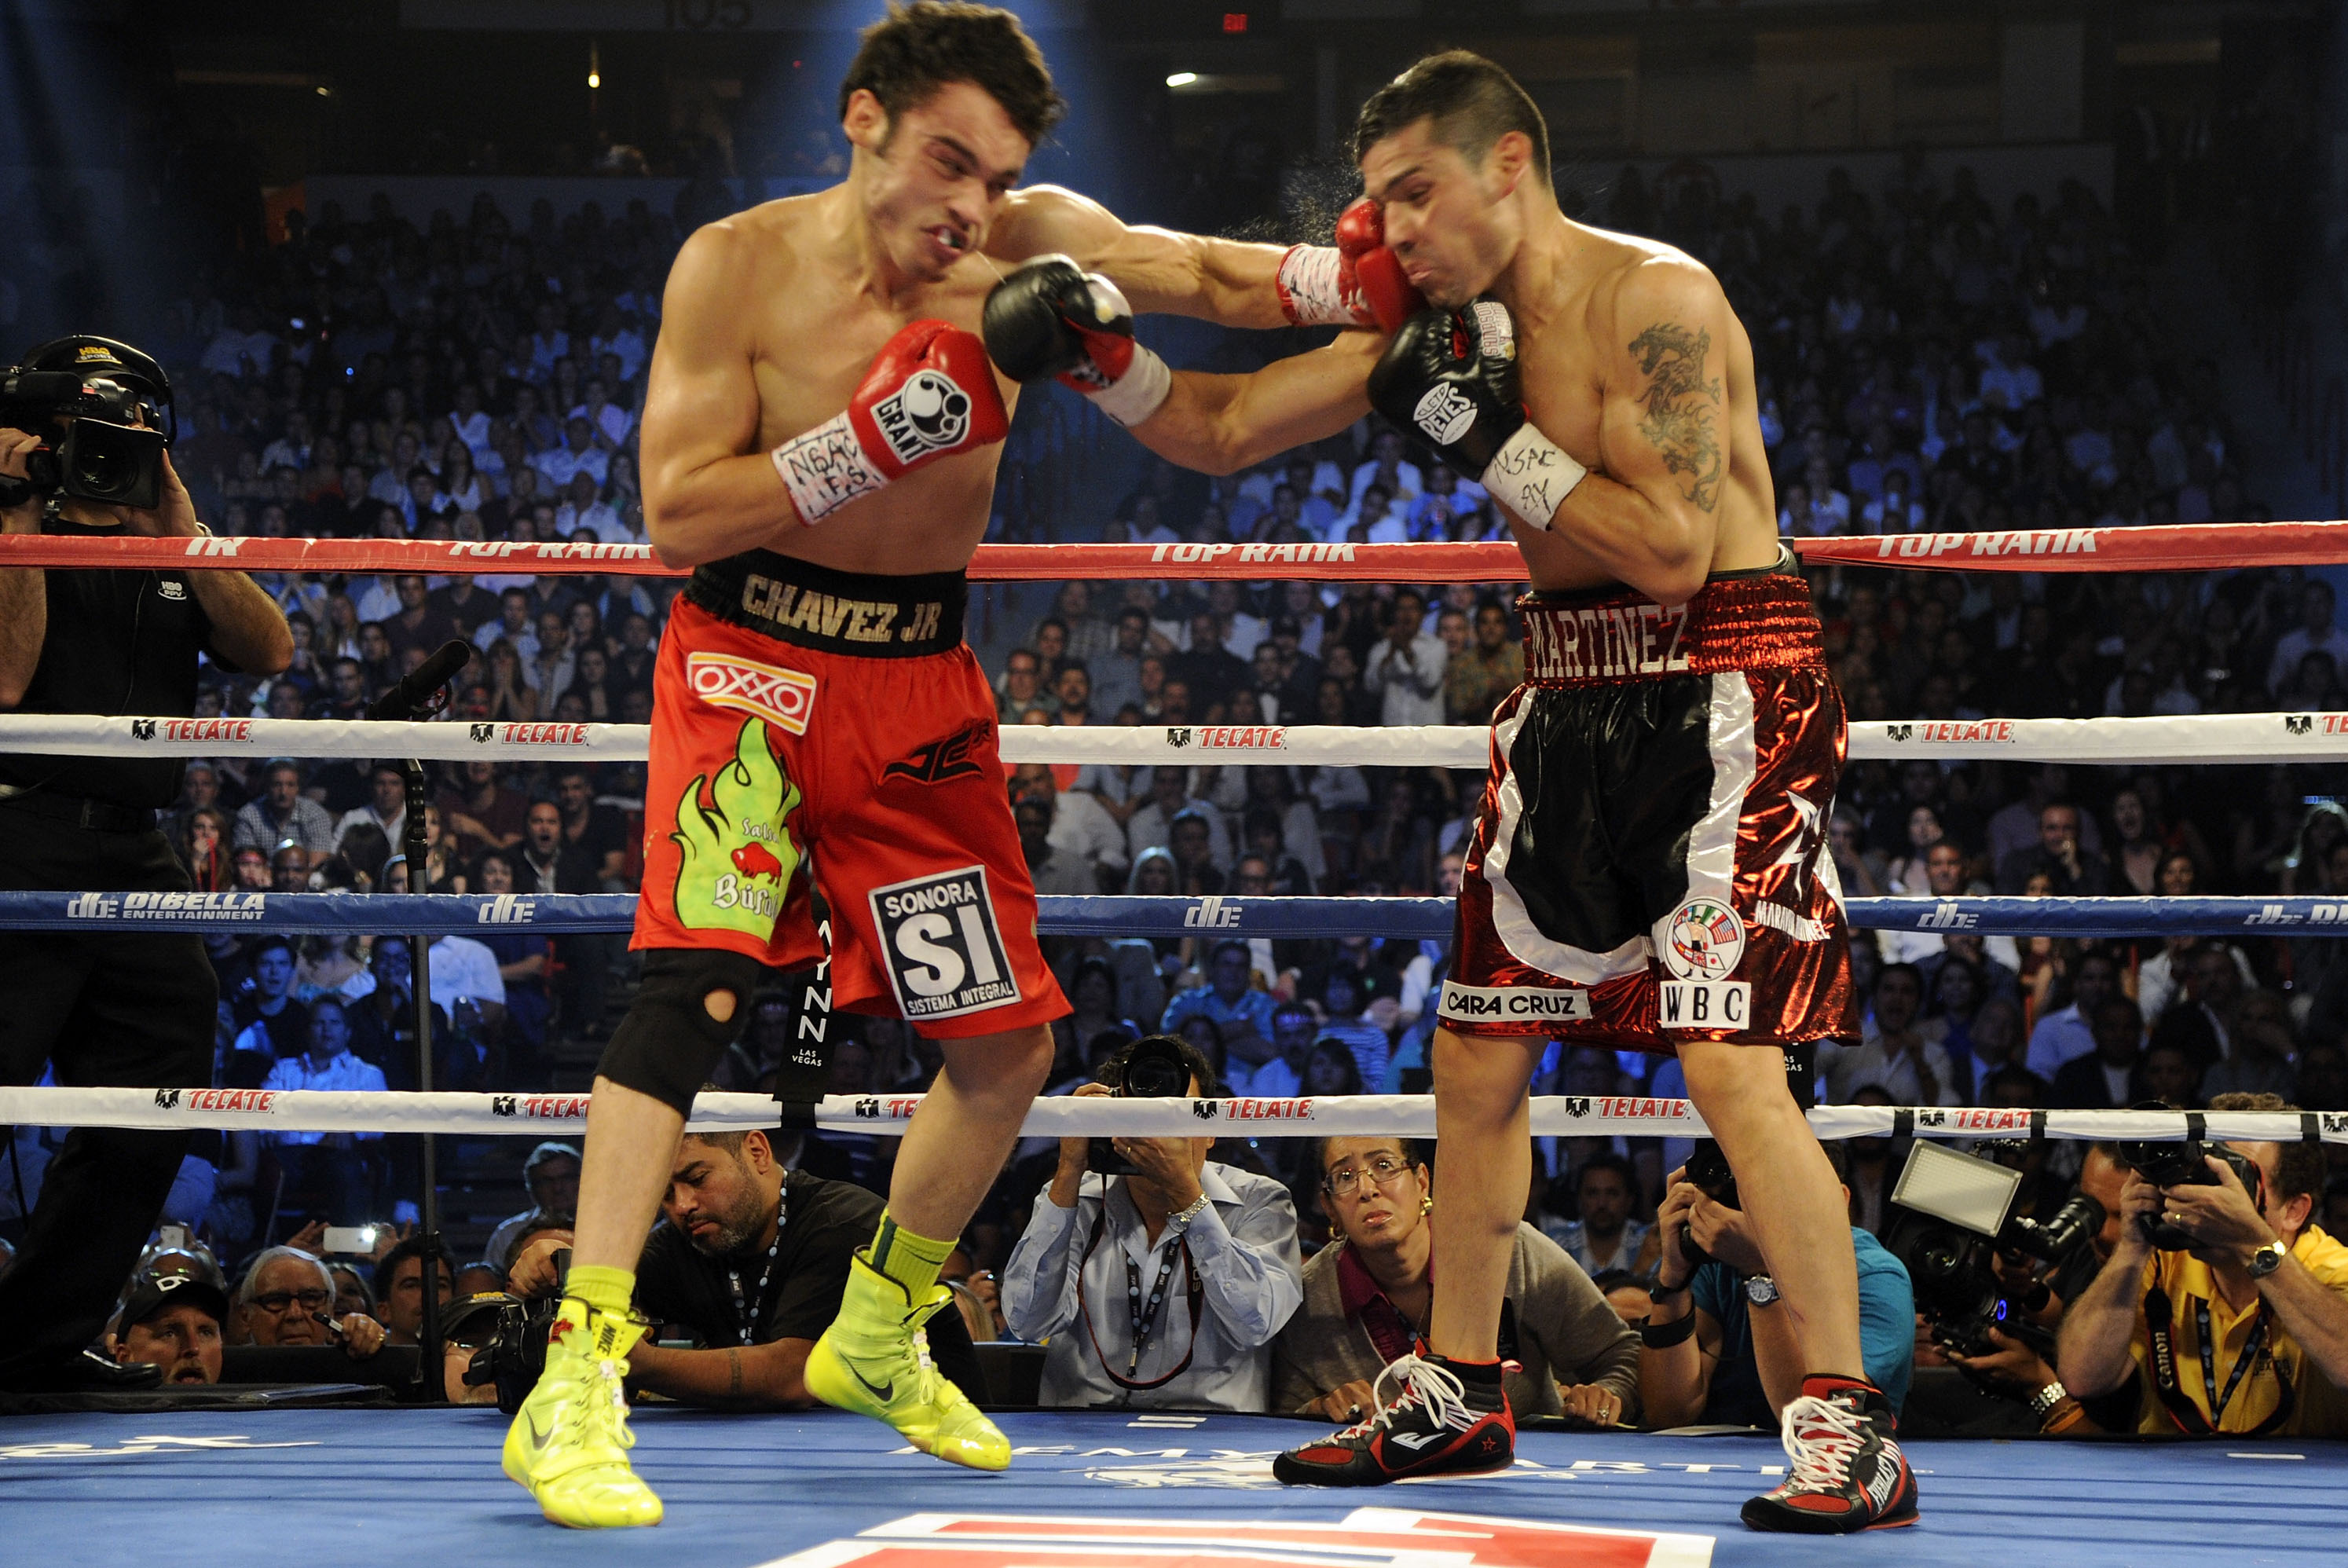 Ranking the 5 Boxers with the Most Exciting Fighting Styles